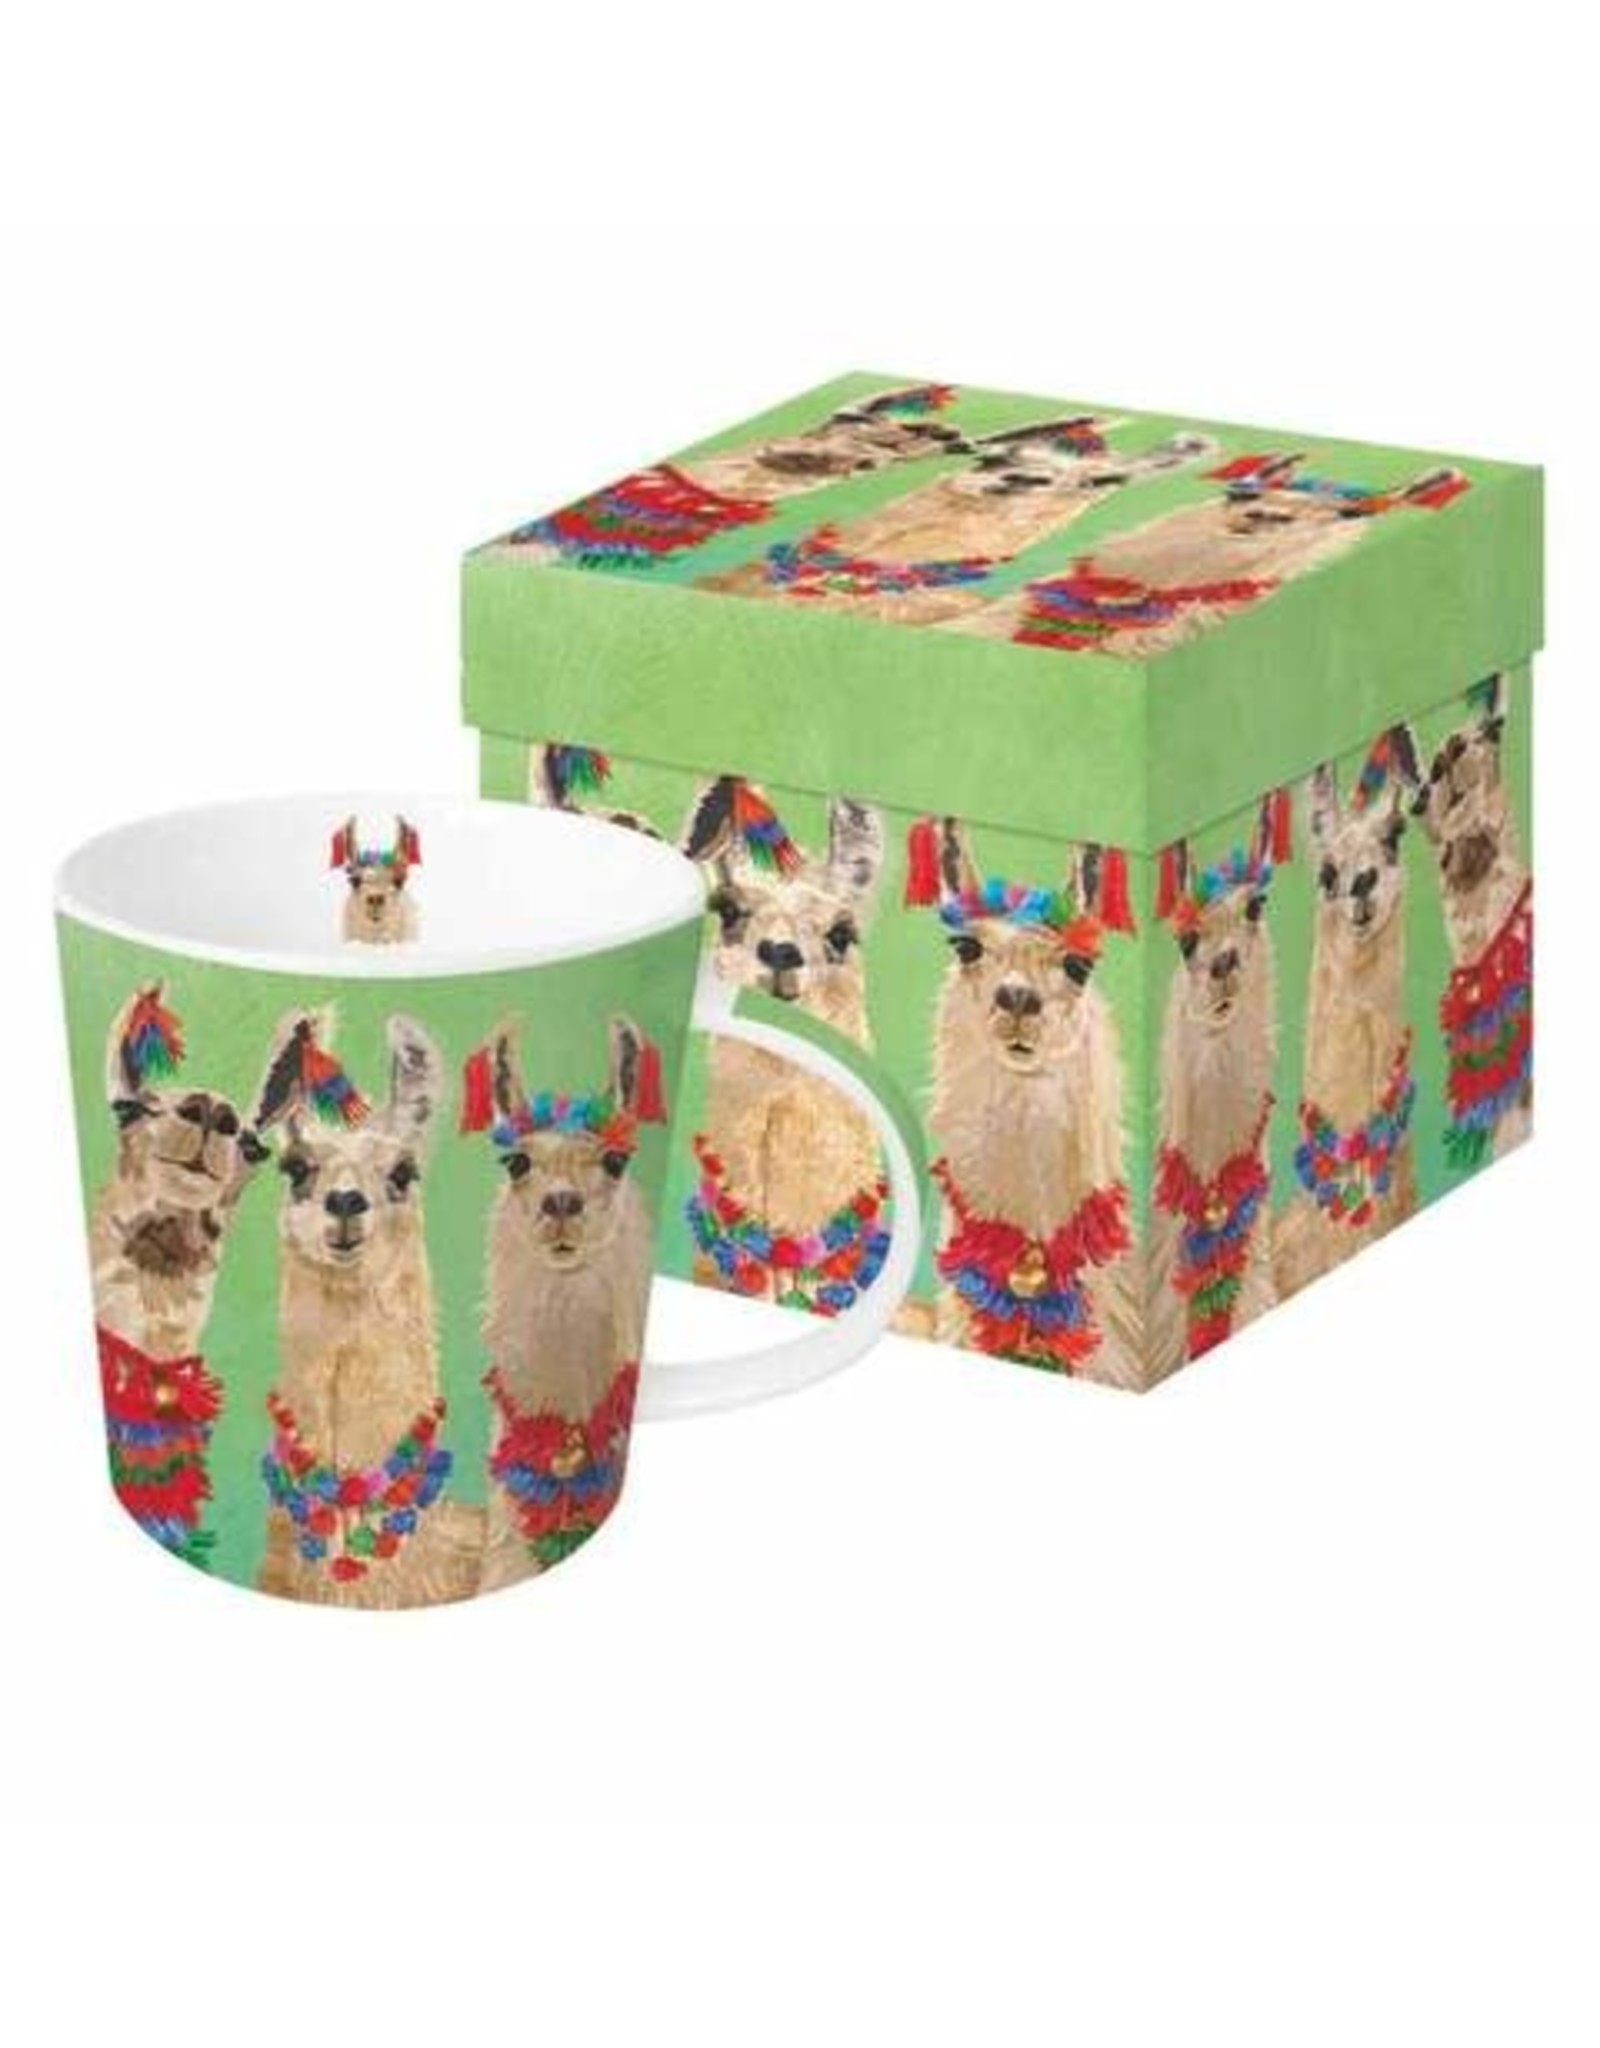 Paper Products Designs LLAMA AMIGOS MUG IN GIFT BOX